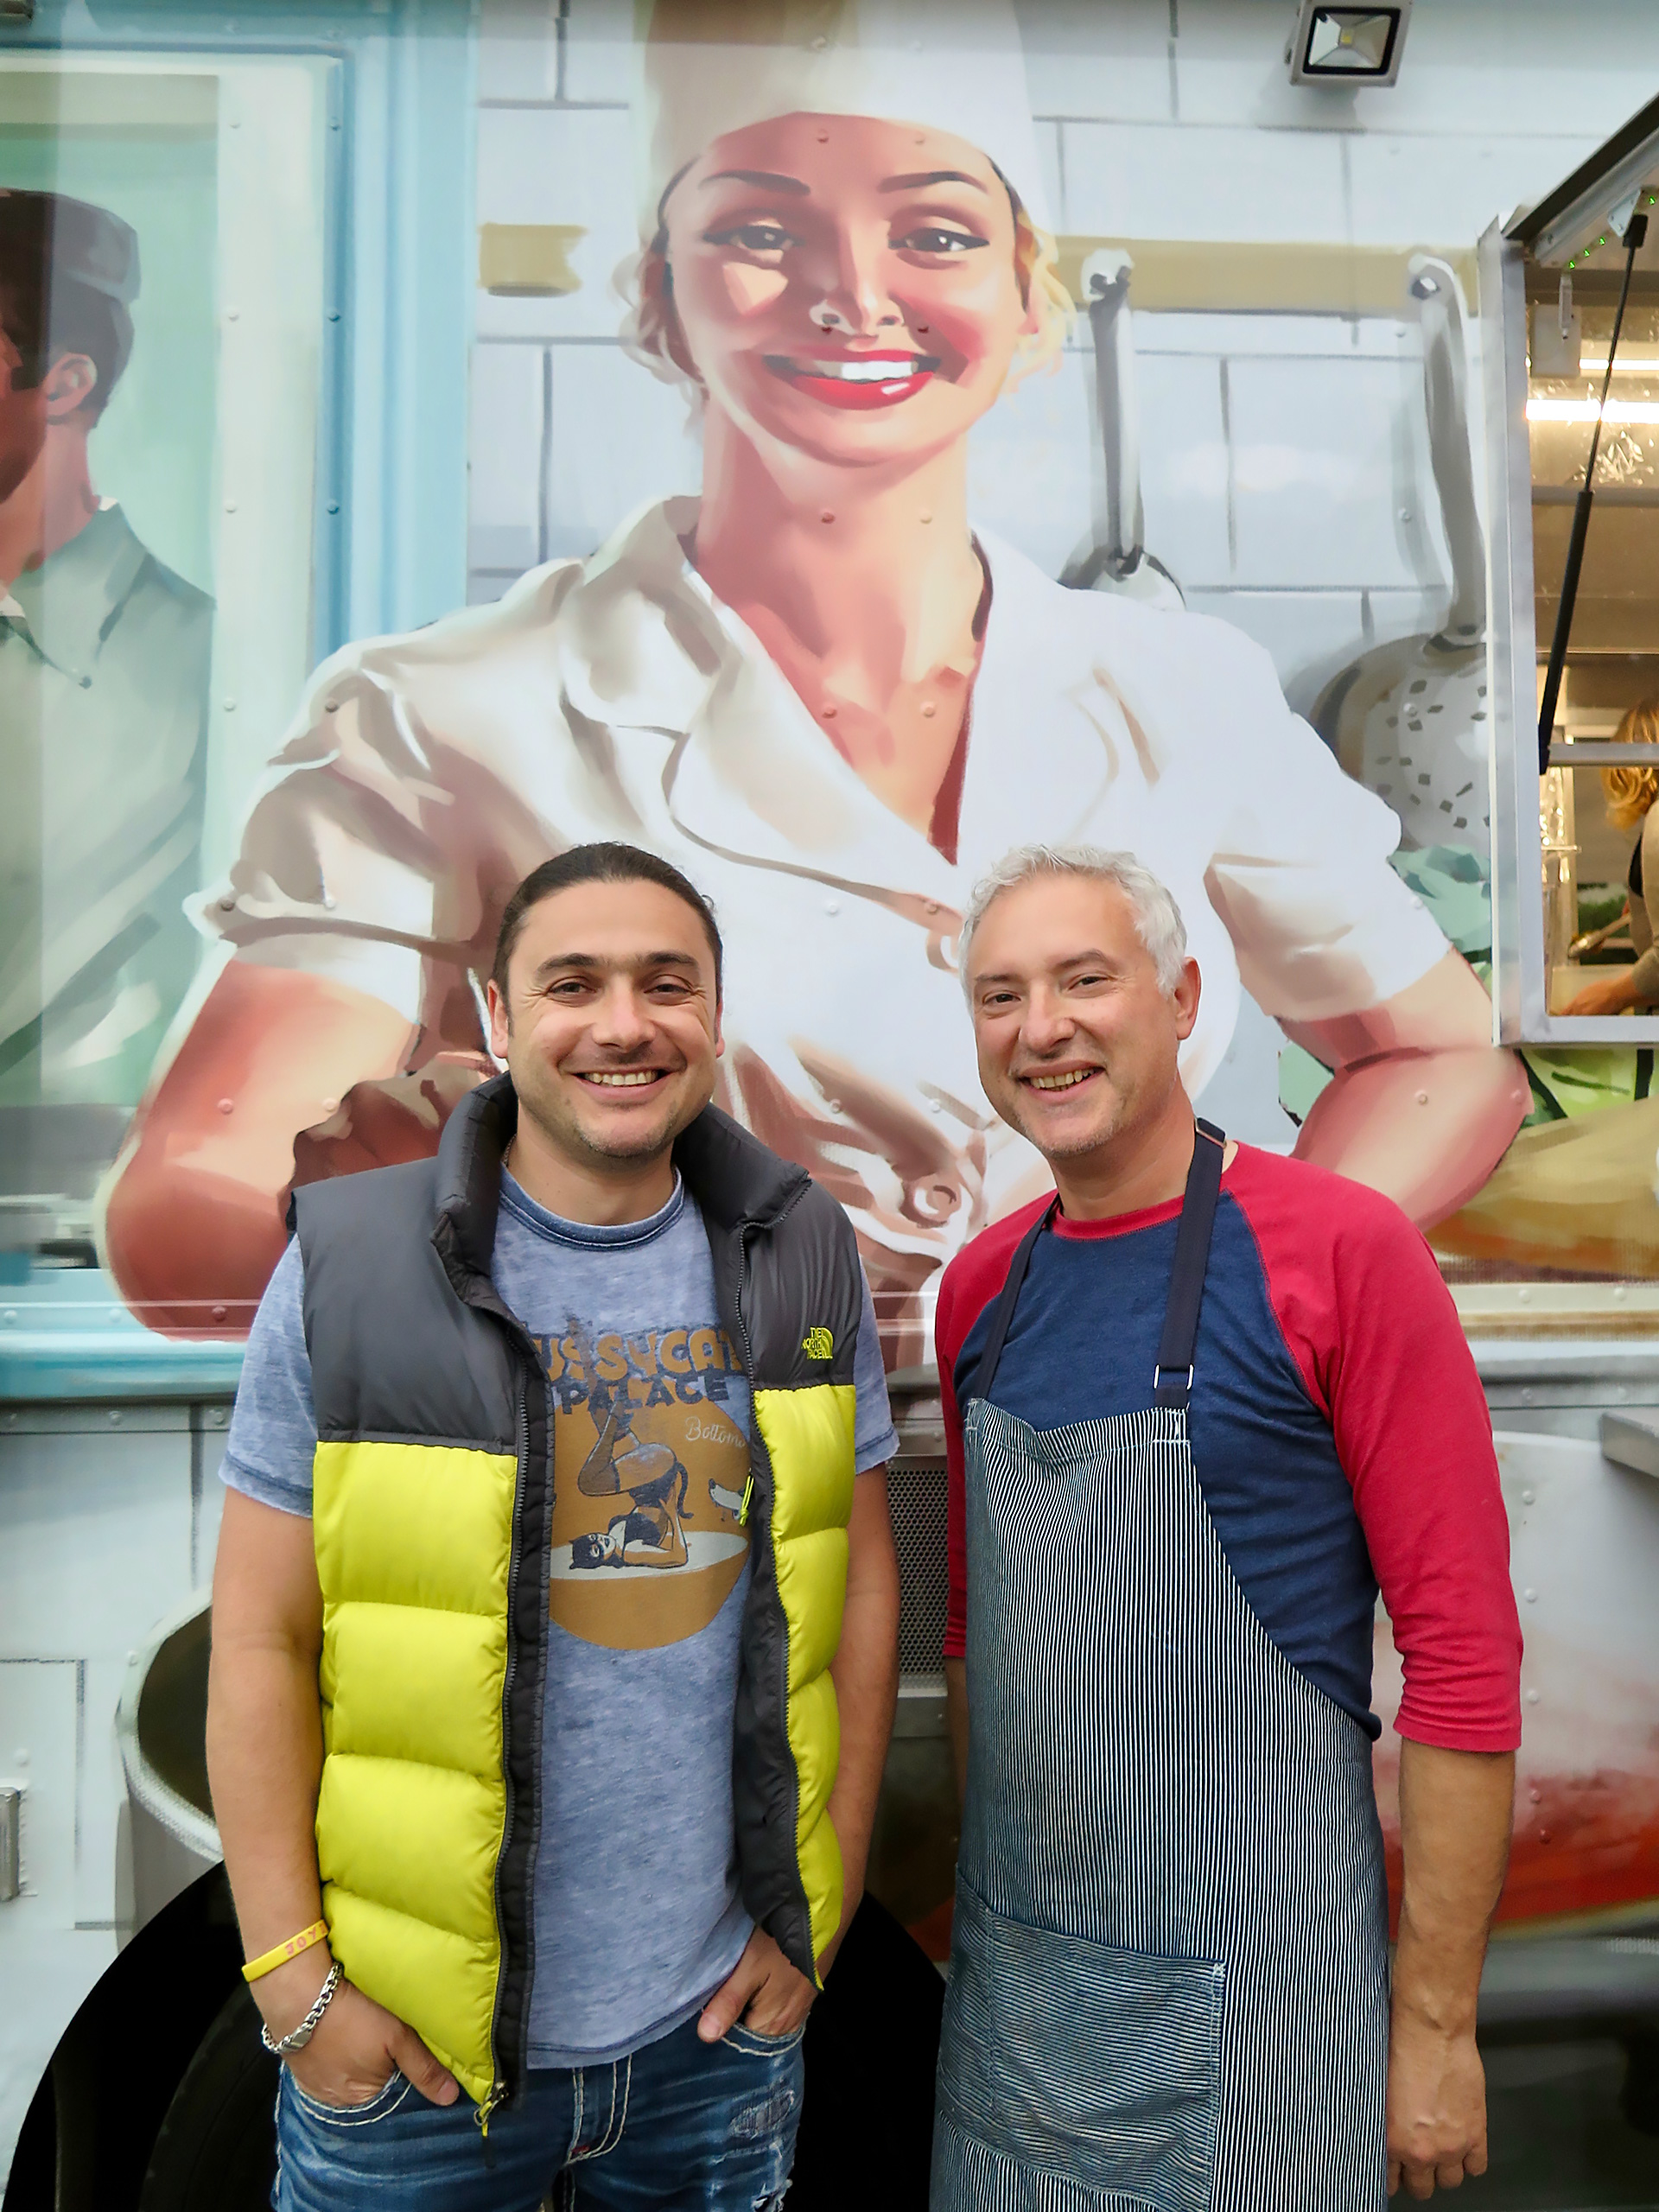 Meet the cooks behind the Borsch Mobile: Kirill Deninzon and Igor Teplitsky.